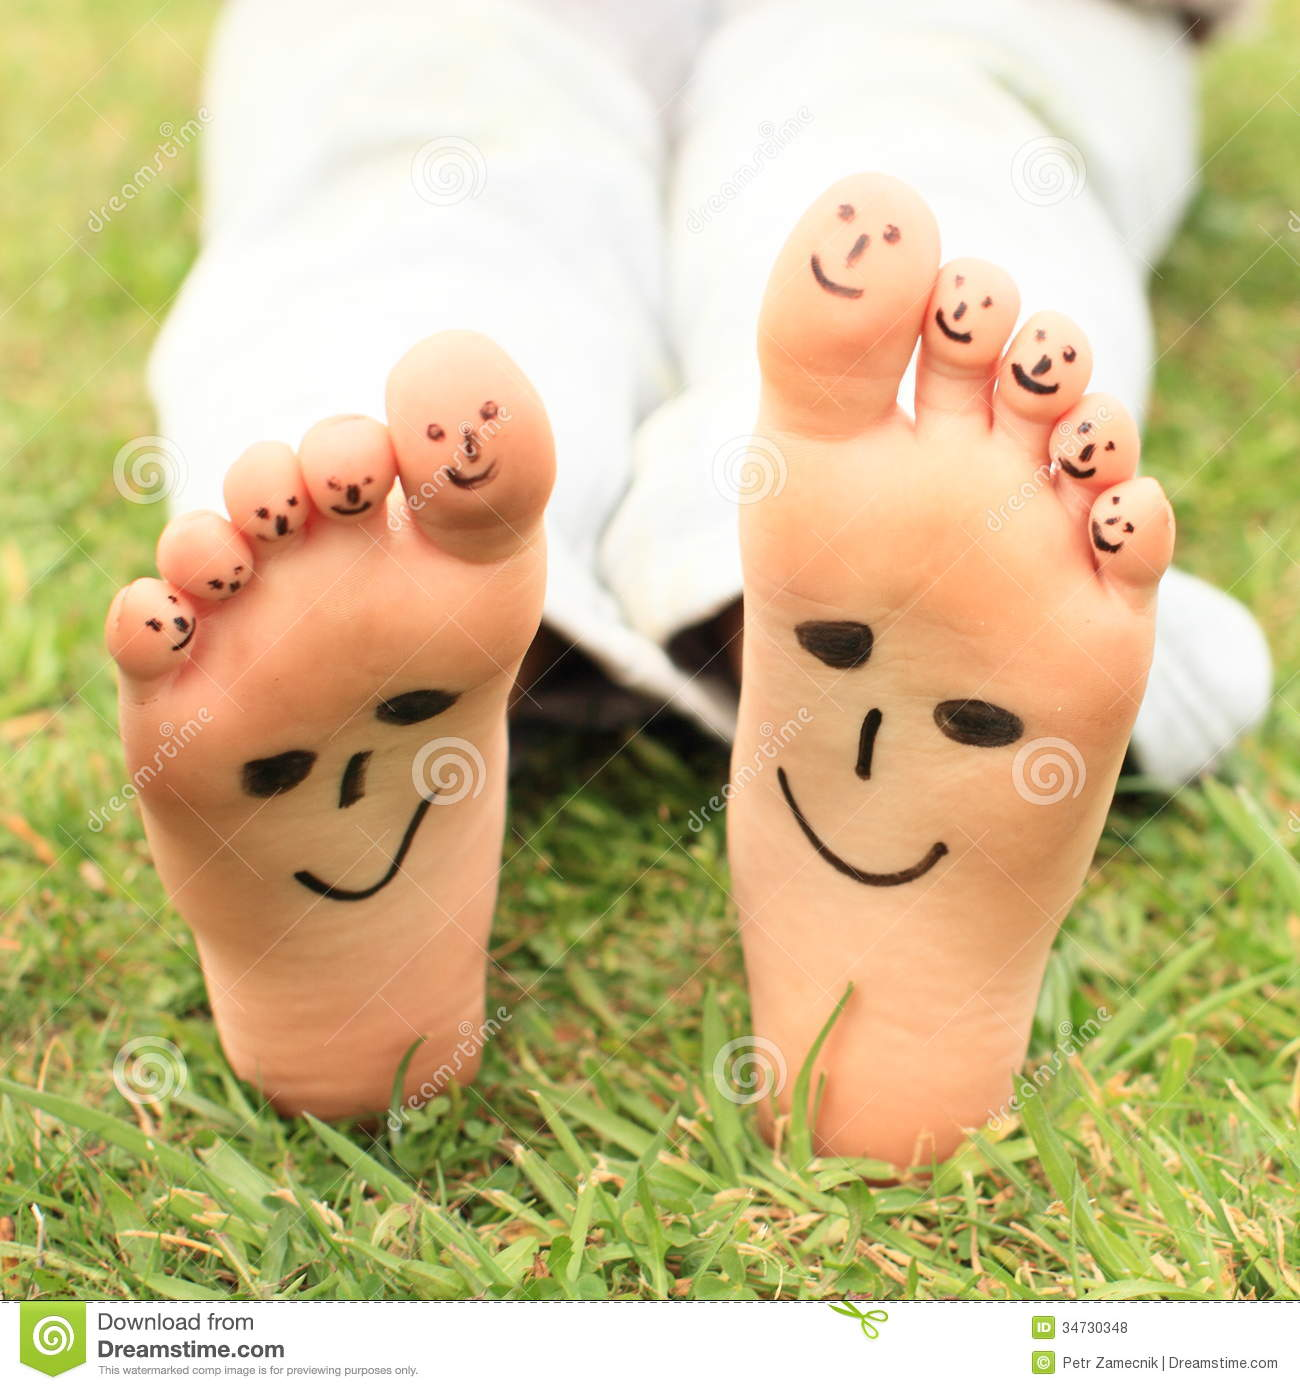 Bare Feet Clip Art | Feetsies image | Feet | Pinterest | Art and ...